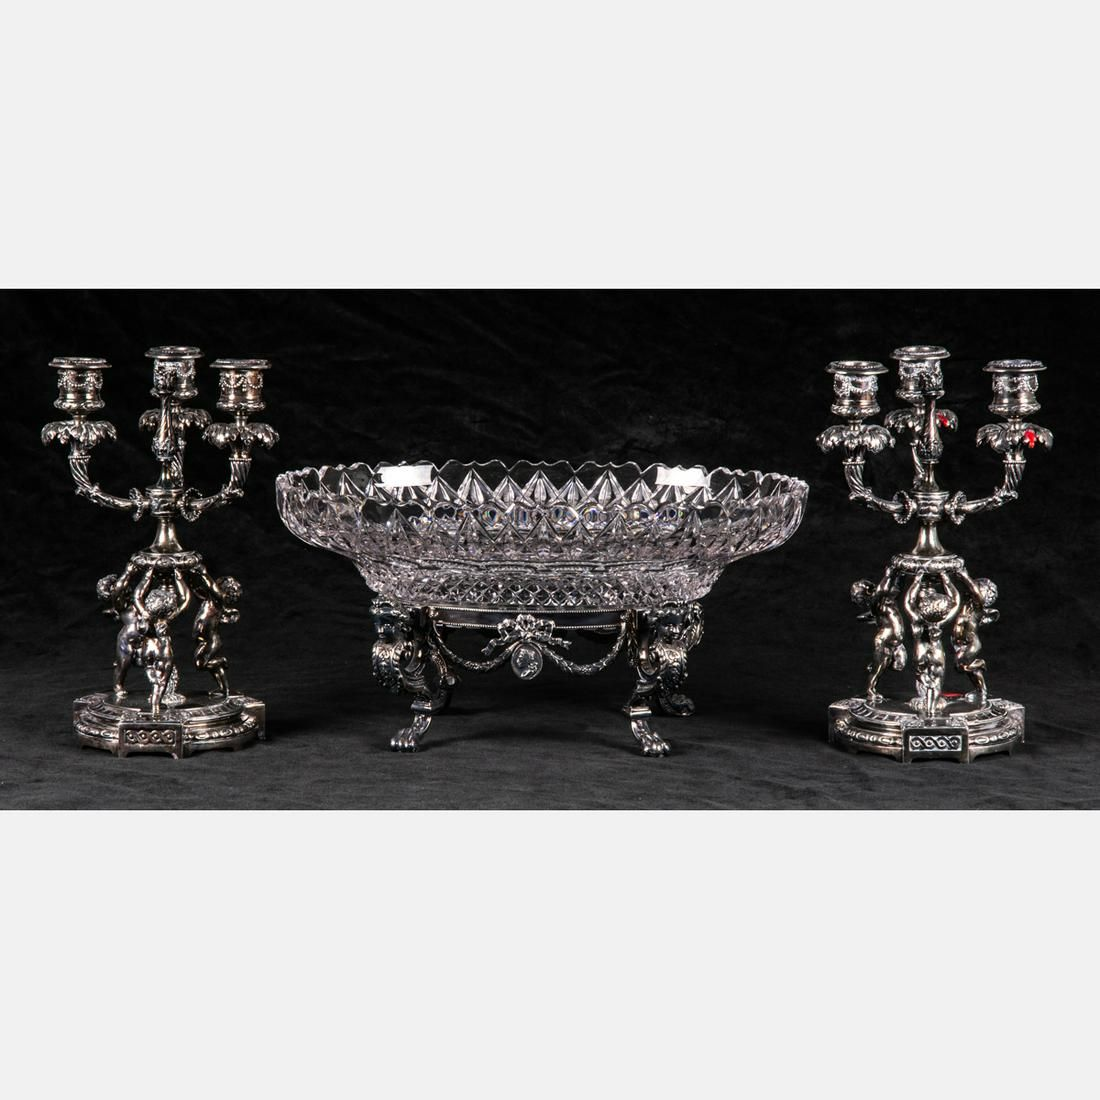 A Pairpoint Silver Plated and Cut Crystal Three Piece